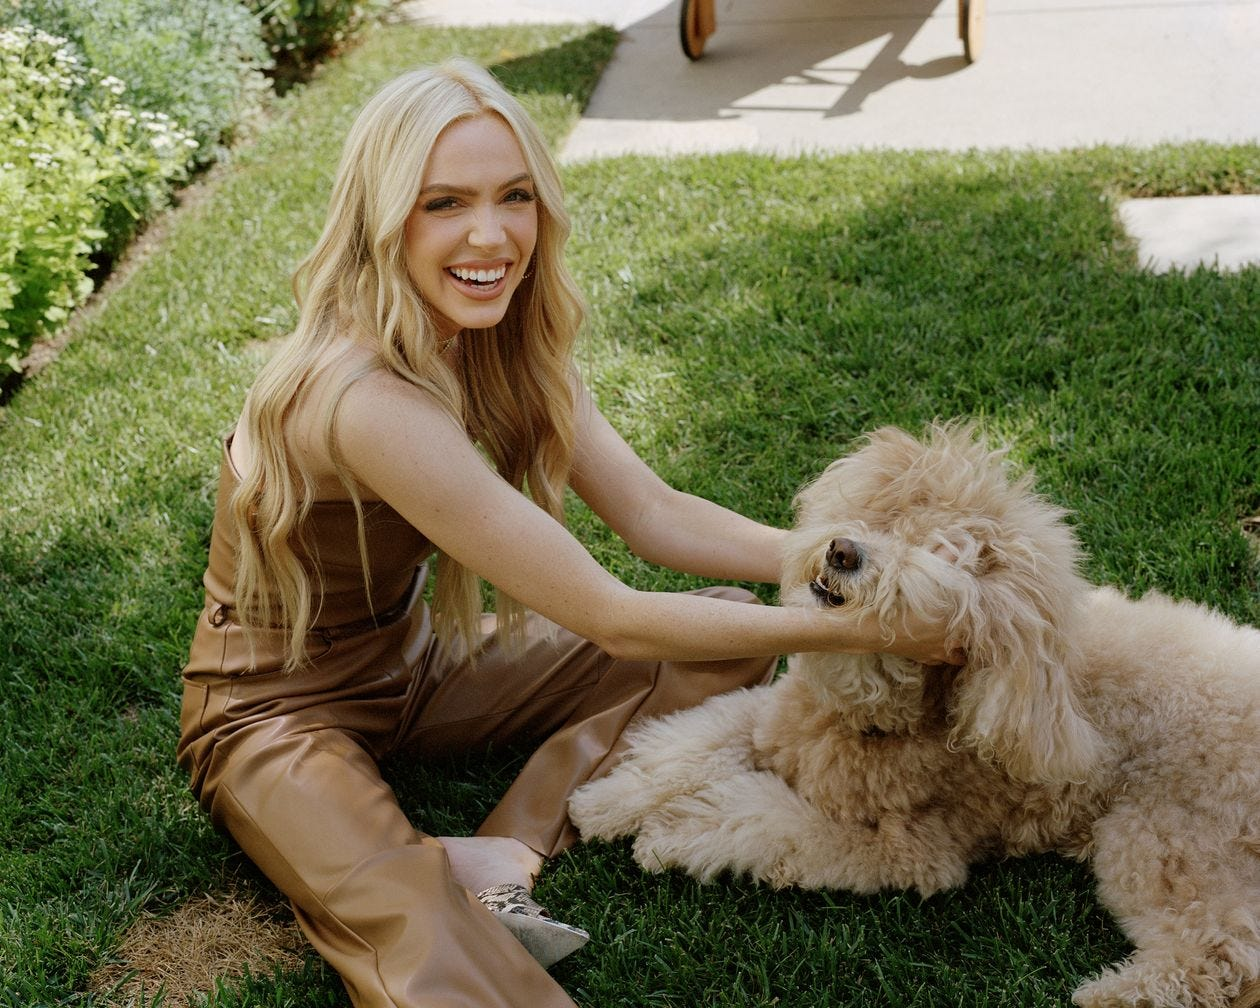 Picture of Alex Cooper, blond and smiling in brown leather pants and a leather tube top (?) sitting on a green lawn and scritching a very fluffy pup.